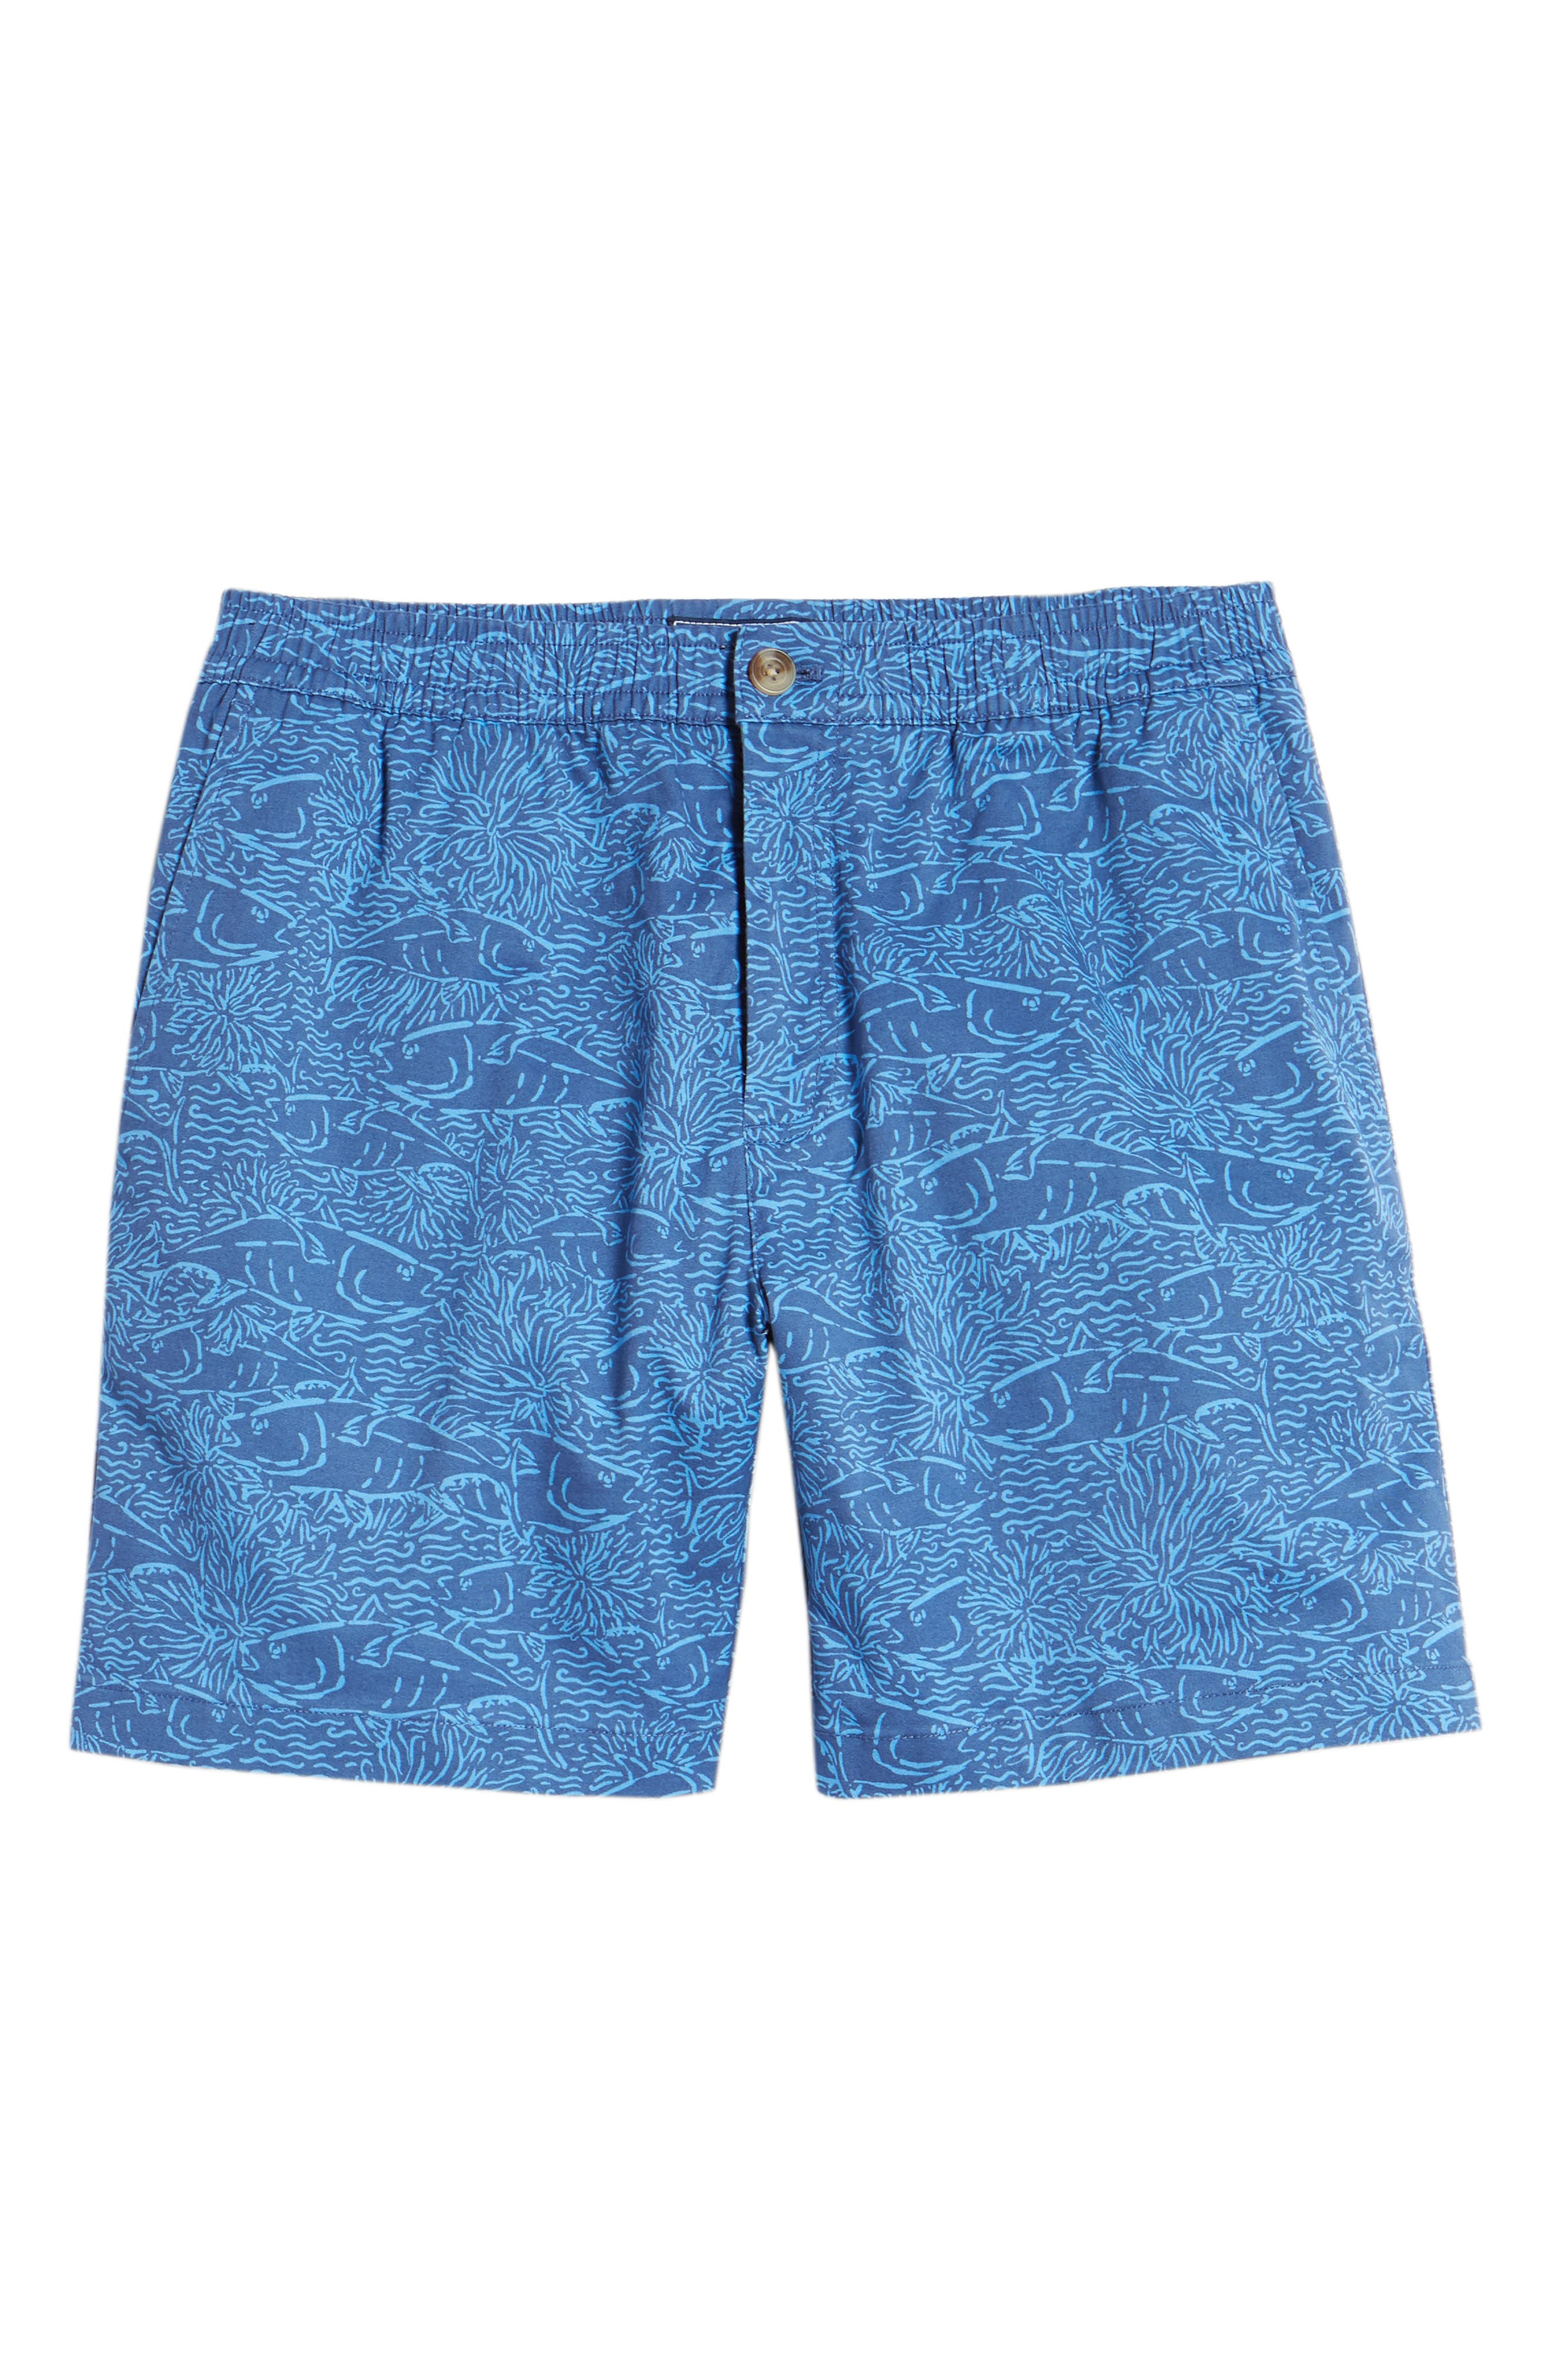 Jetty Print Stretch Cotton Shorts,                             Alternate thumbnail 6, color,                             Moonshine